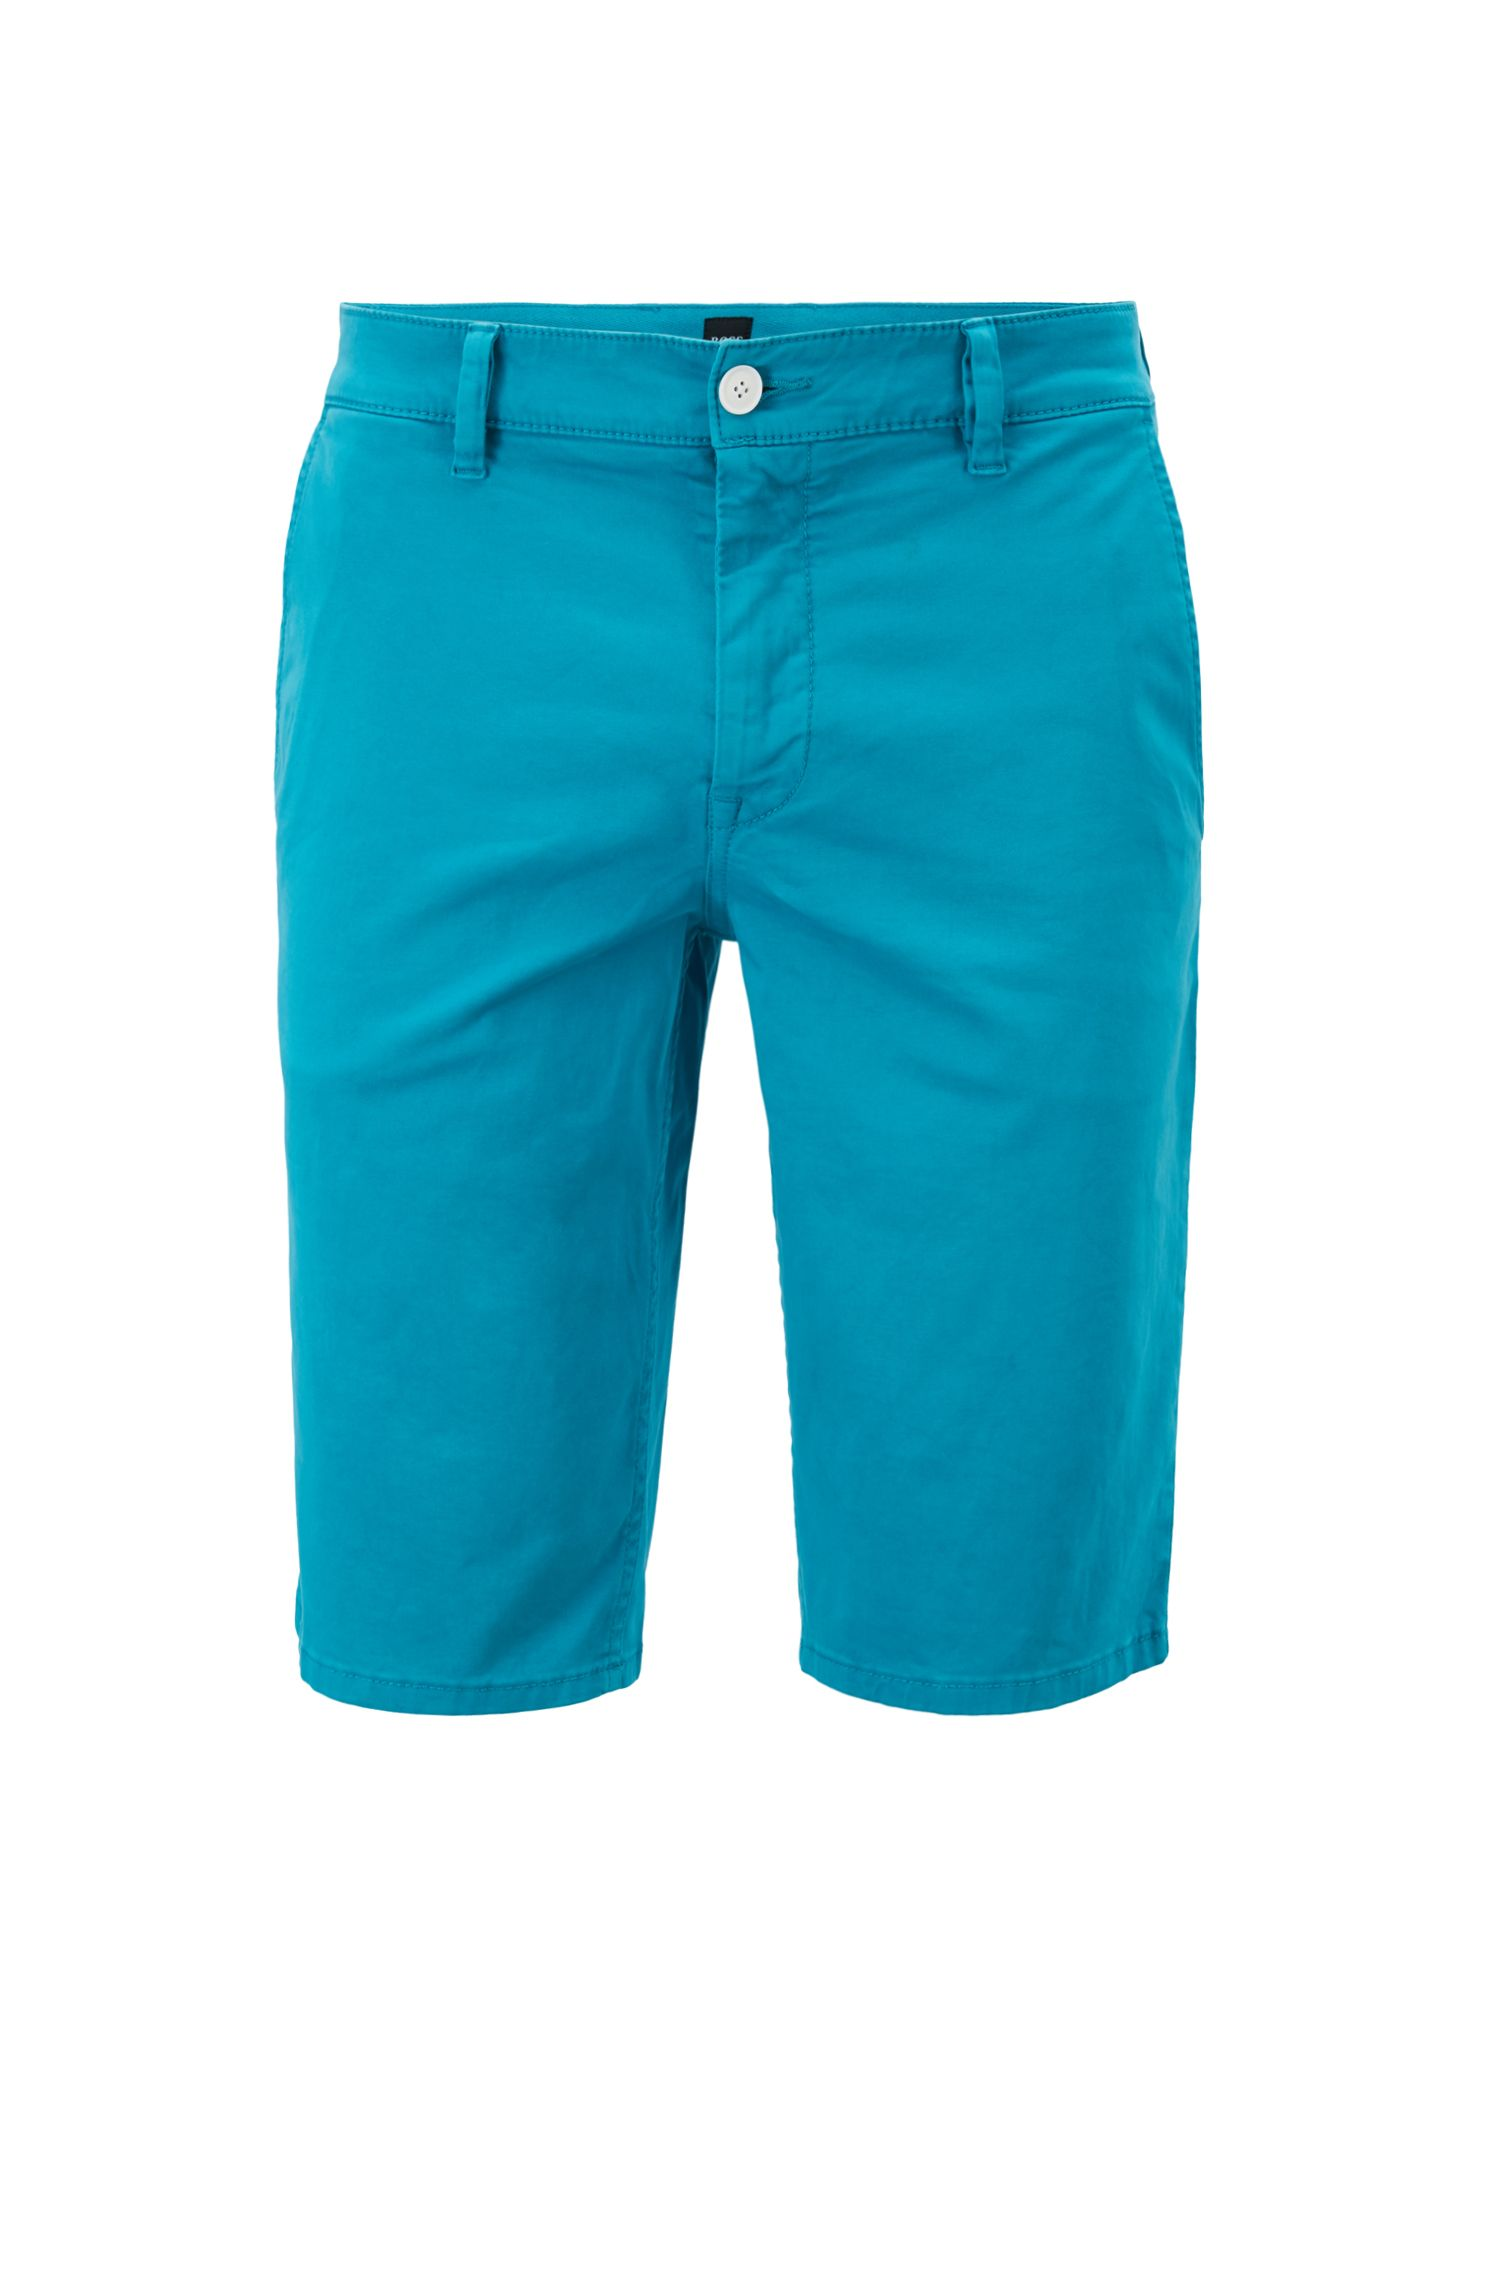 Short chino Slim Fit en satin stretch double teinte, Turquoise